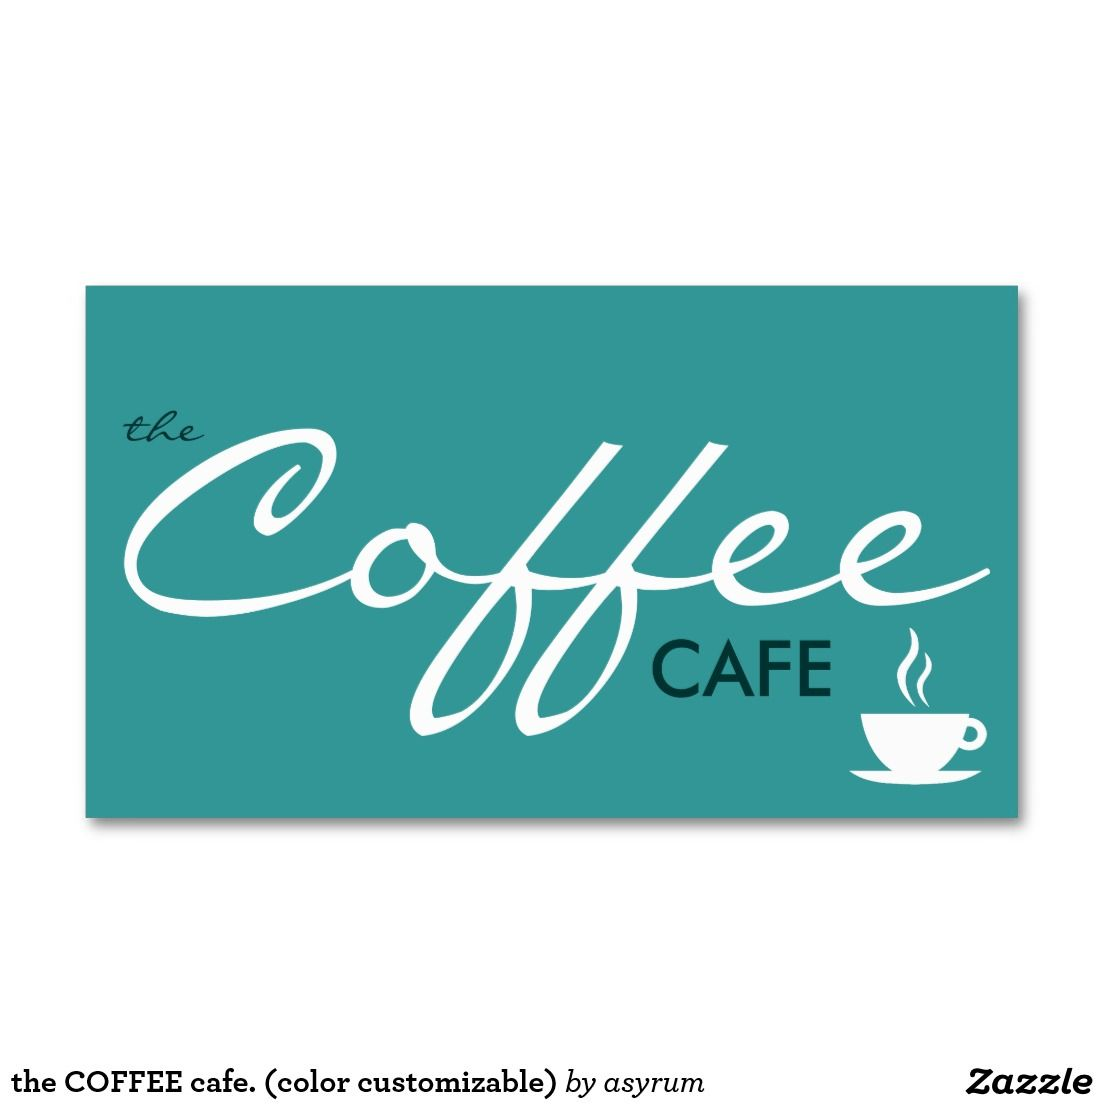 The coffee cafe color customizable double sided standard business the coffee cafe color customizable double sided standard business cards 05202015 to berlin germany asyrum one a day pinterest coffee cafe reheart Choice Image